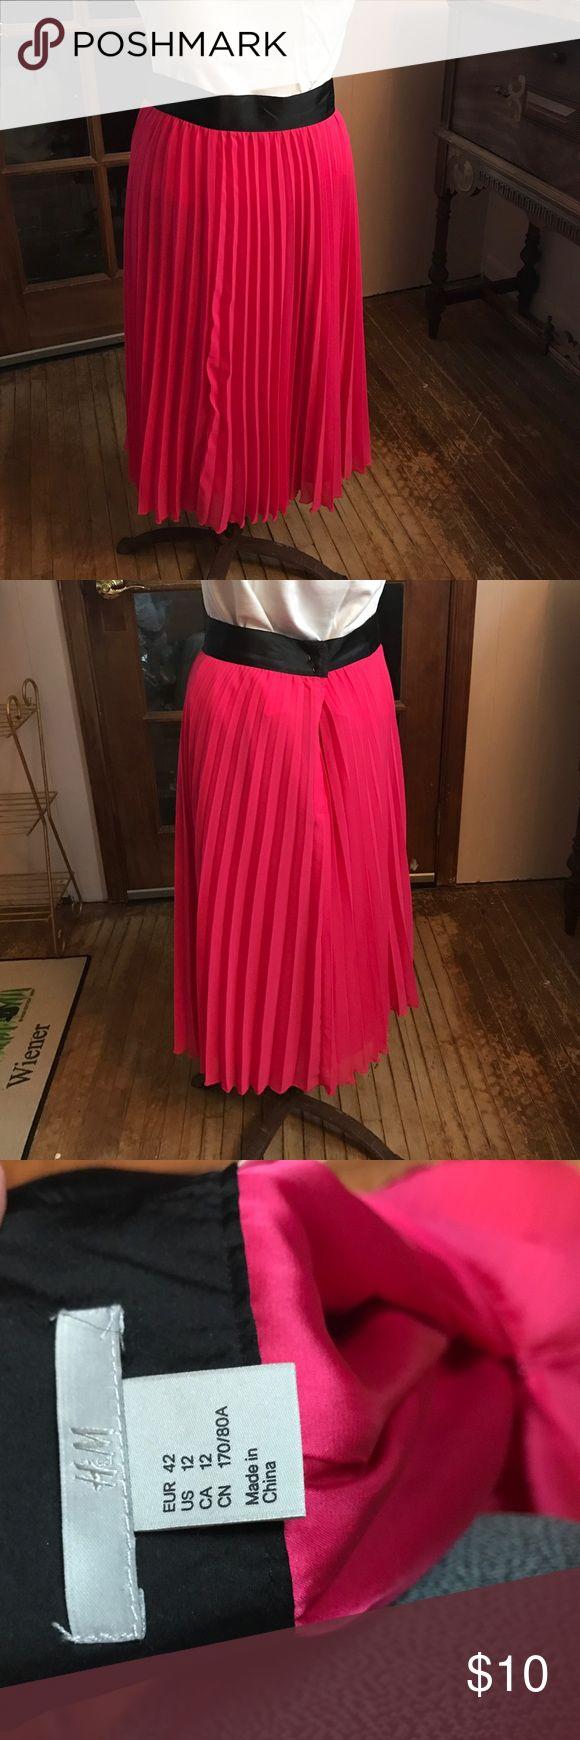 Pleated HM midi skirt Very pretty hot pink HM pleated skirt. Has some oil spots on front that I will try to remove before sale. 100% polyester; machine wash cold H&M Skirts Midi